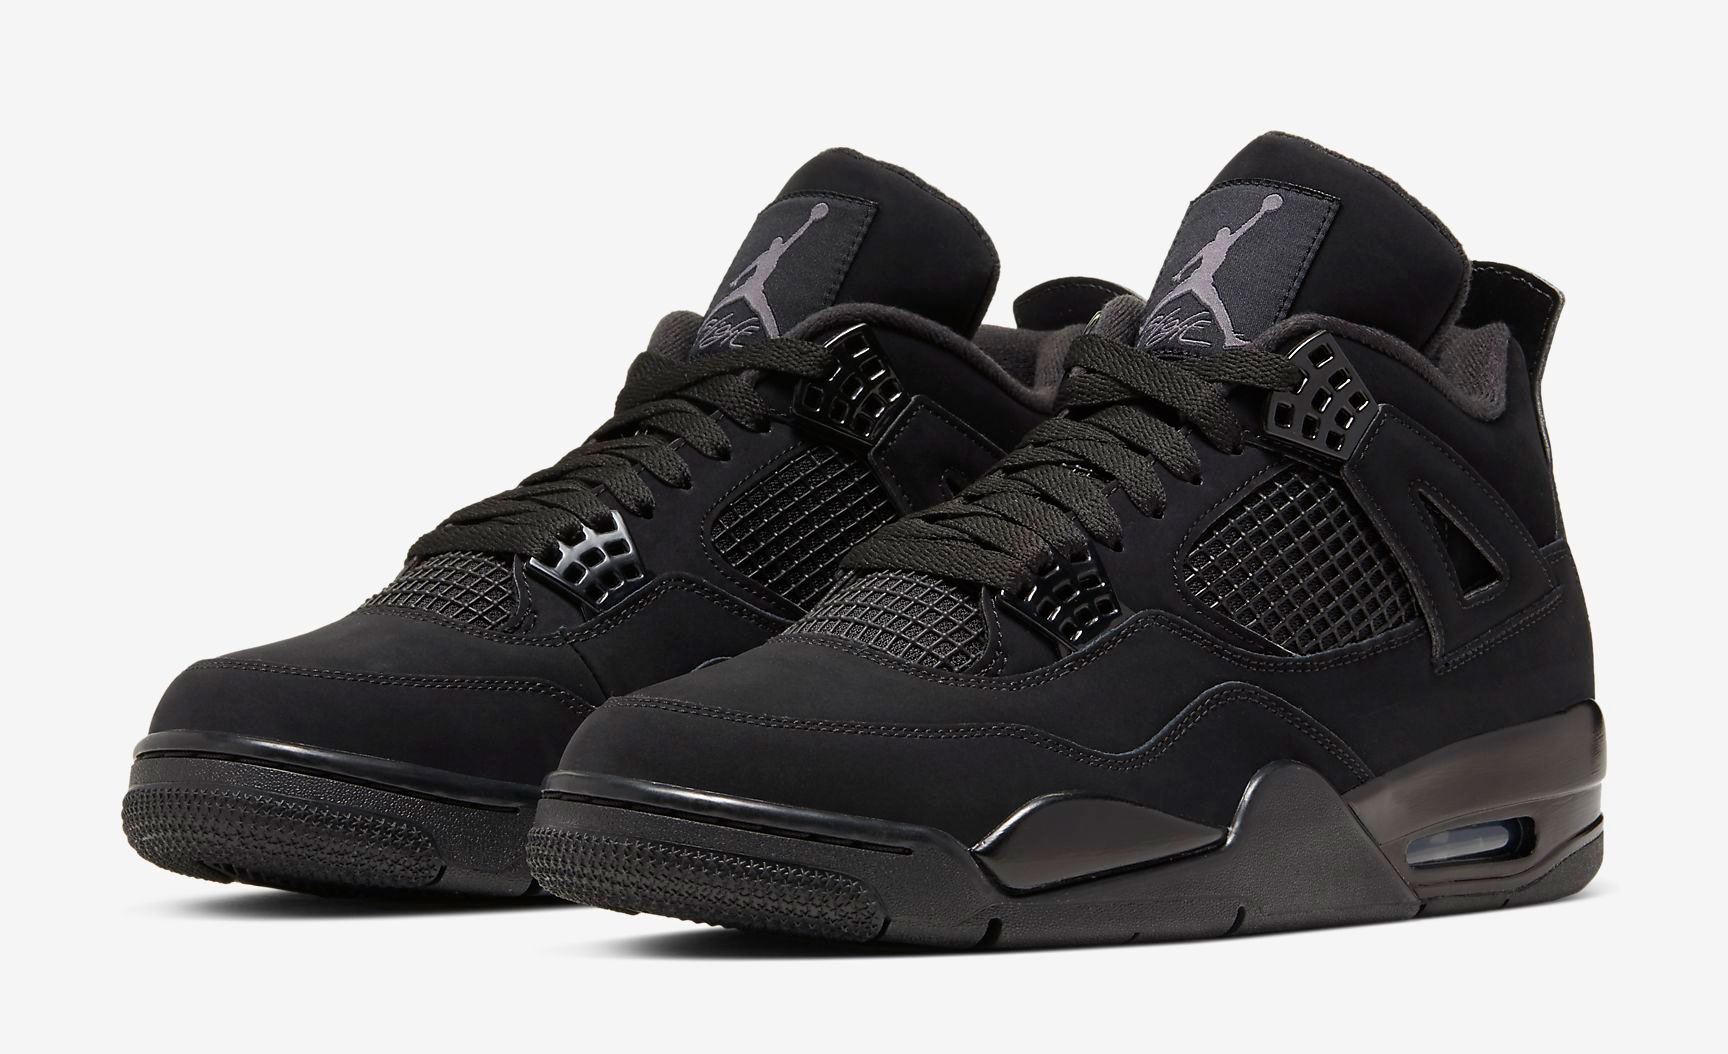 air-jordan-4-black-cat-2020-release-date-1